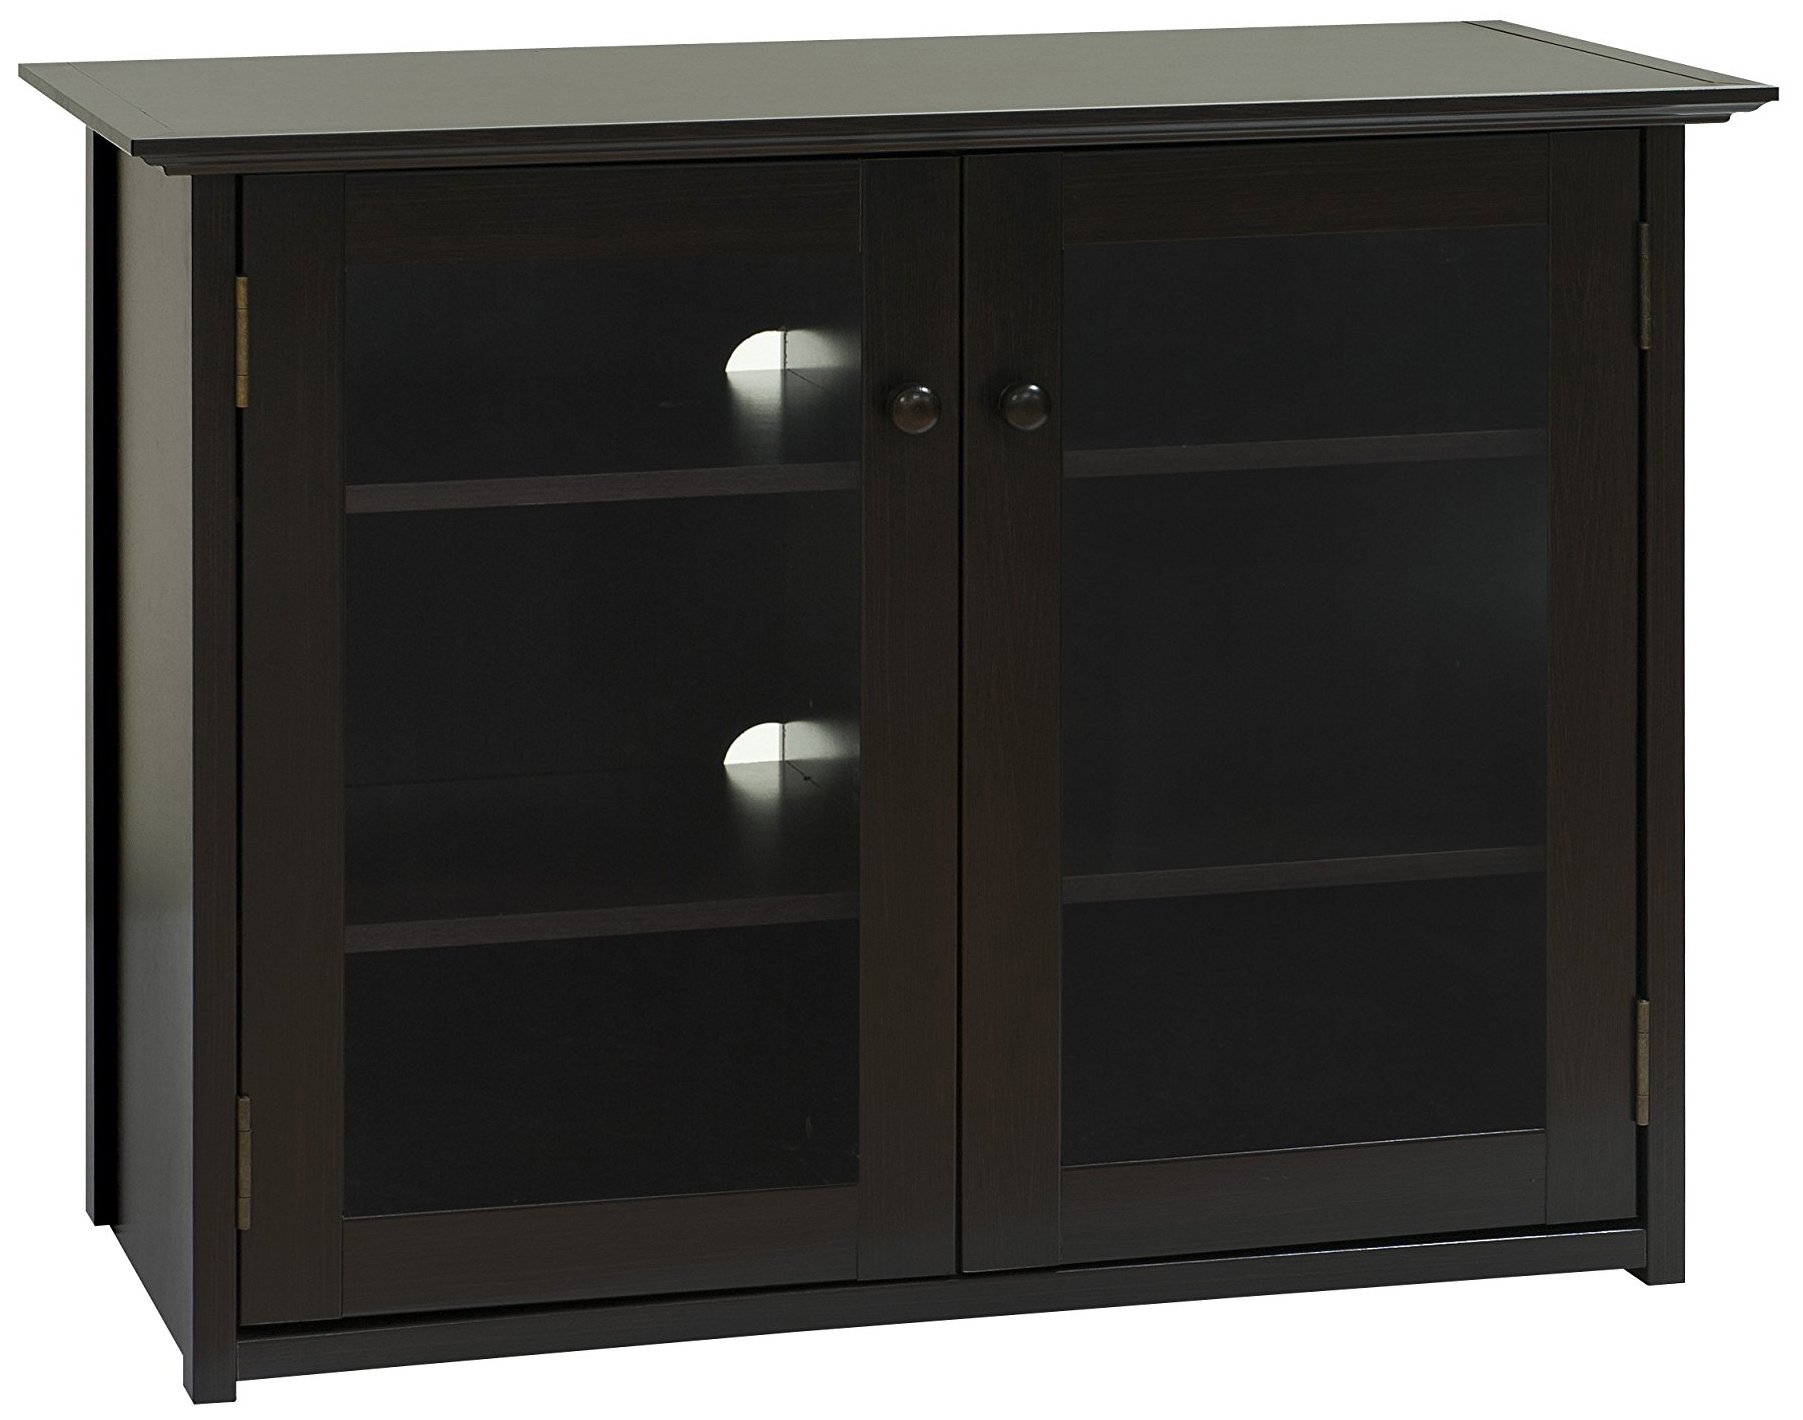 Comfort Products Coublo Collection Console Shelf, Mocha Brown